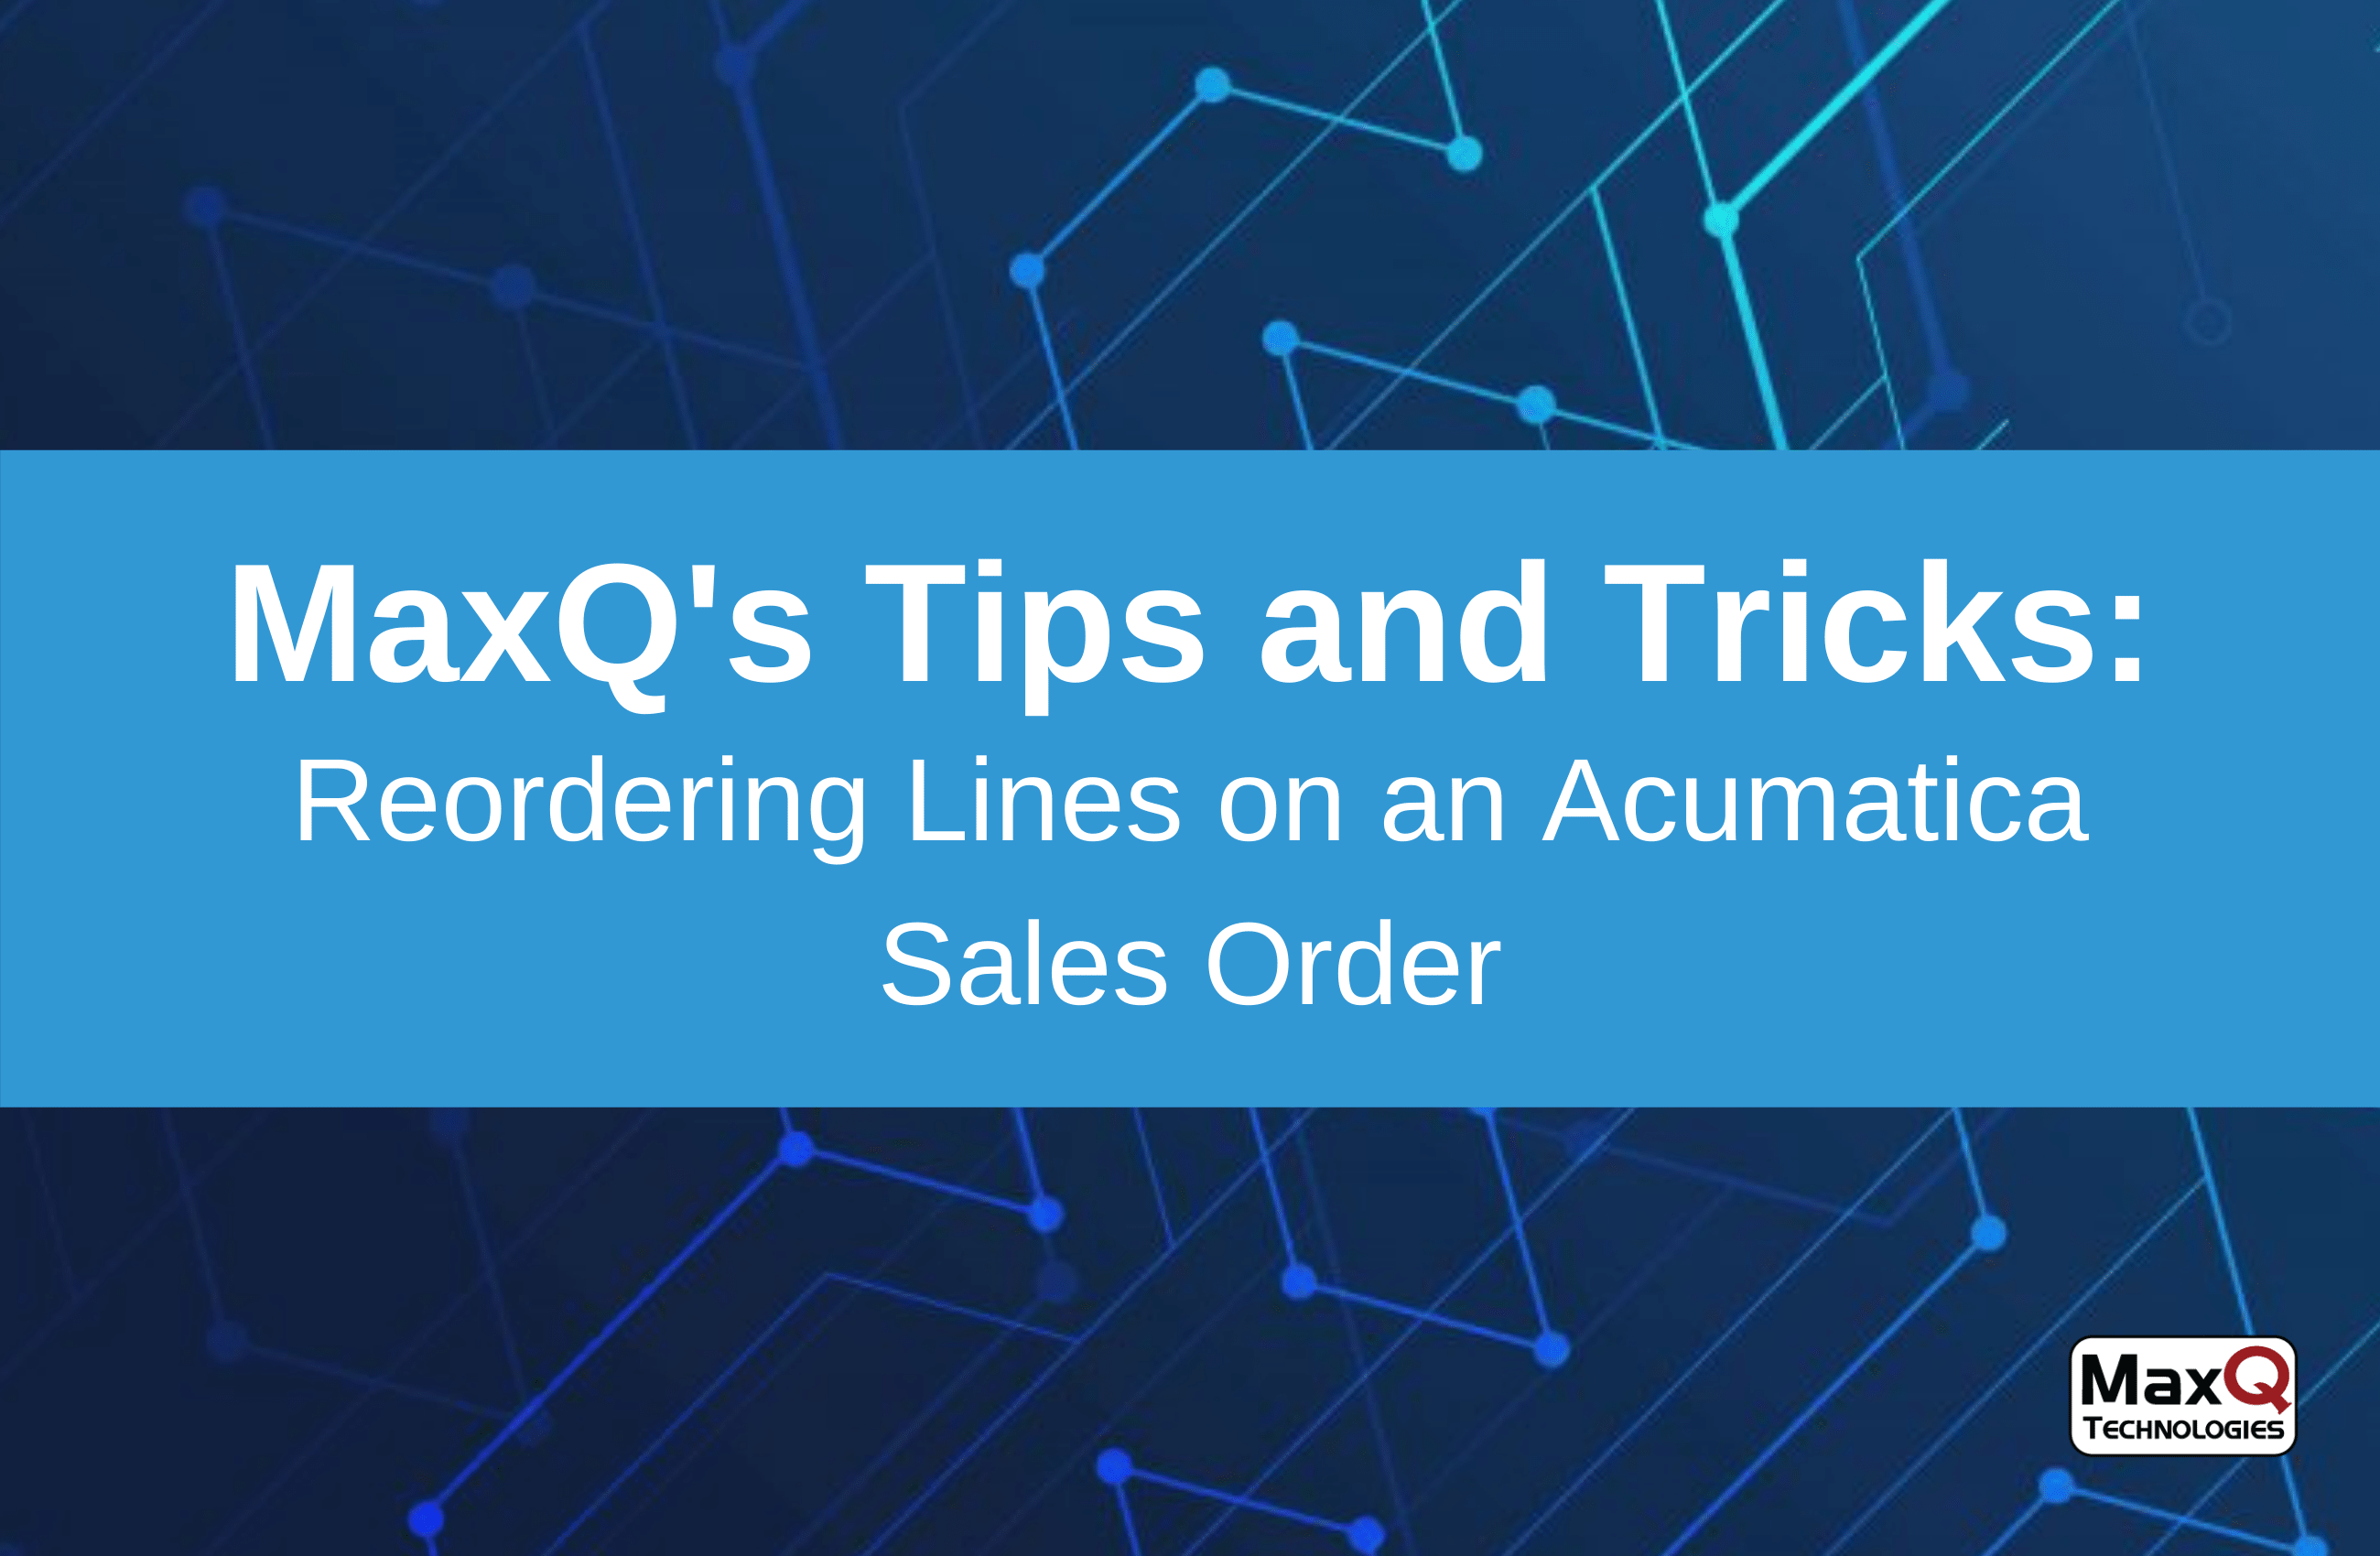 Reordering Lines on an Acumatica Sales Order